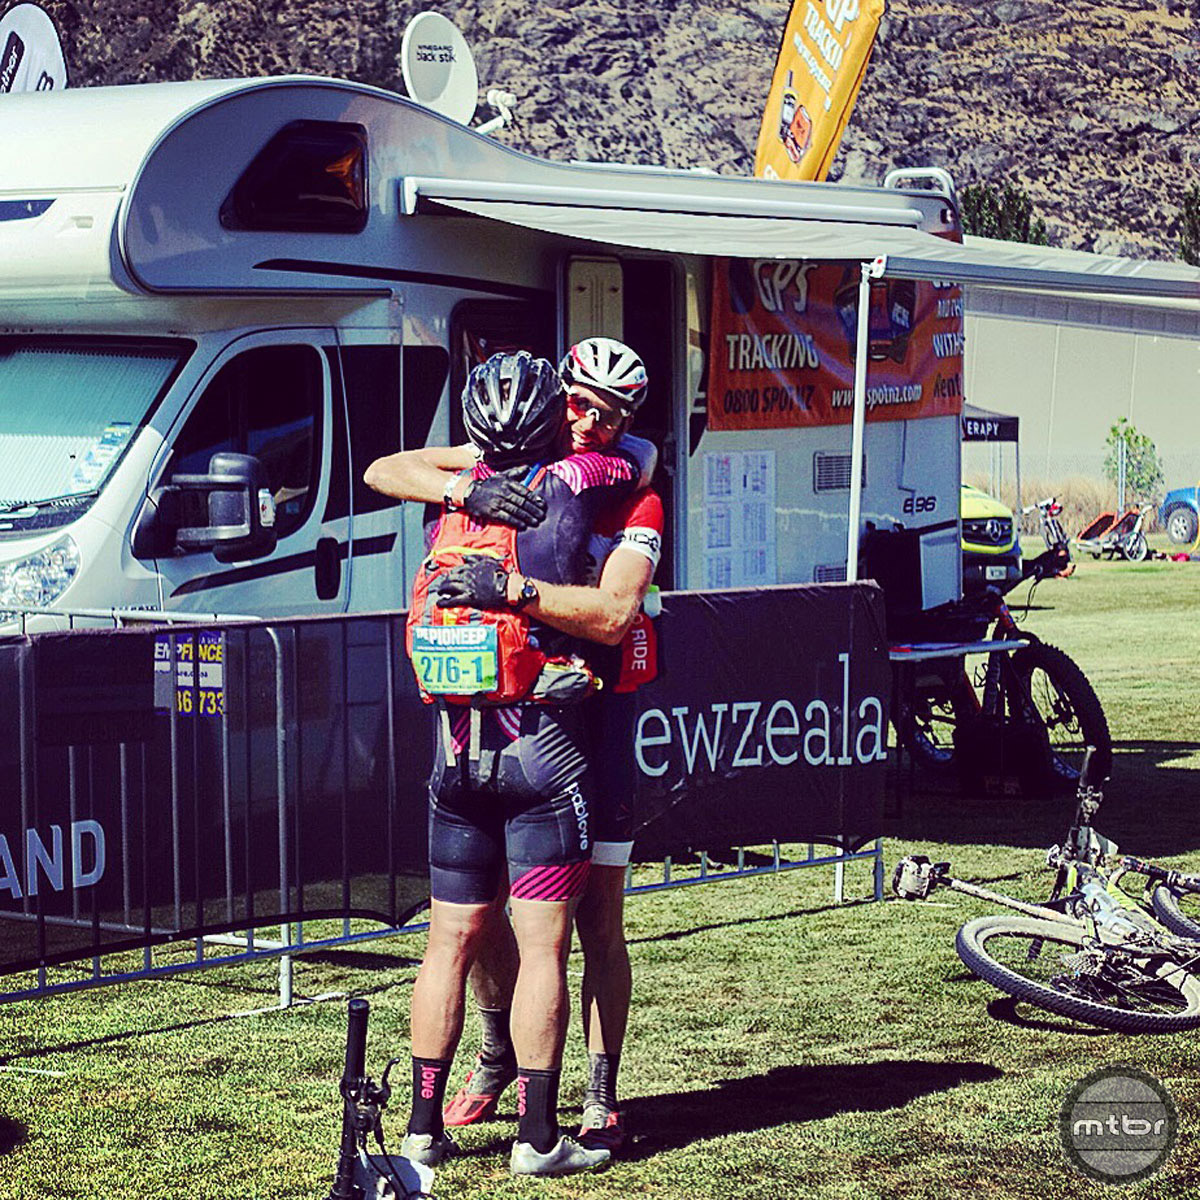 The joy of finishing an epic endeavor was evident for Hauswald and his partner Andrew Young.